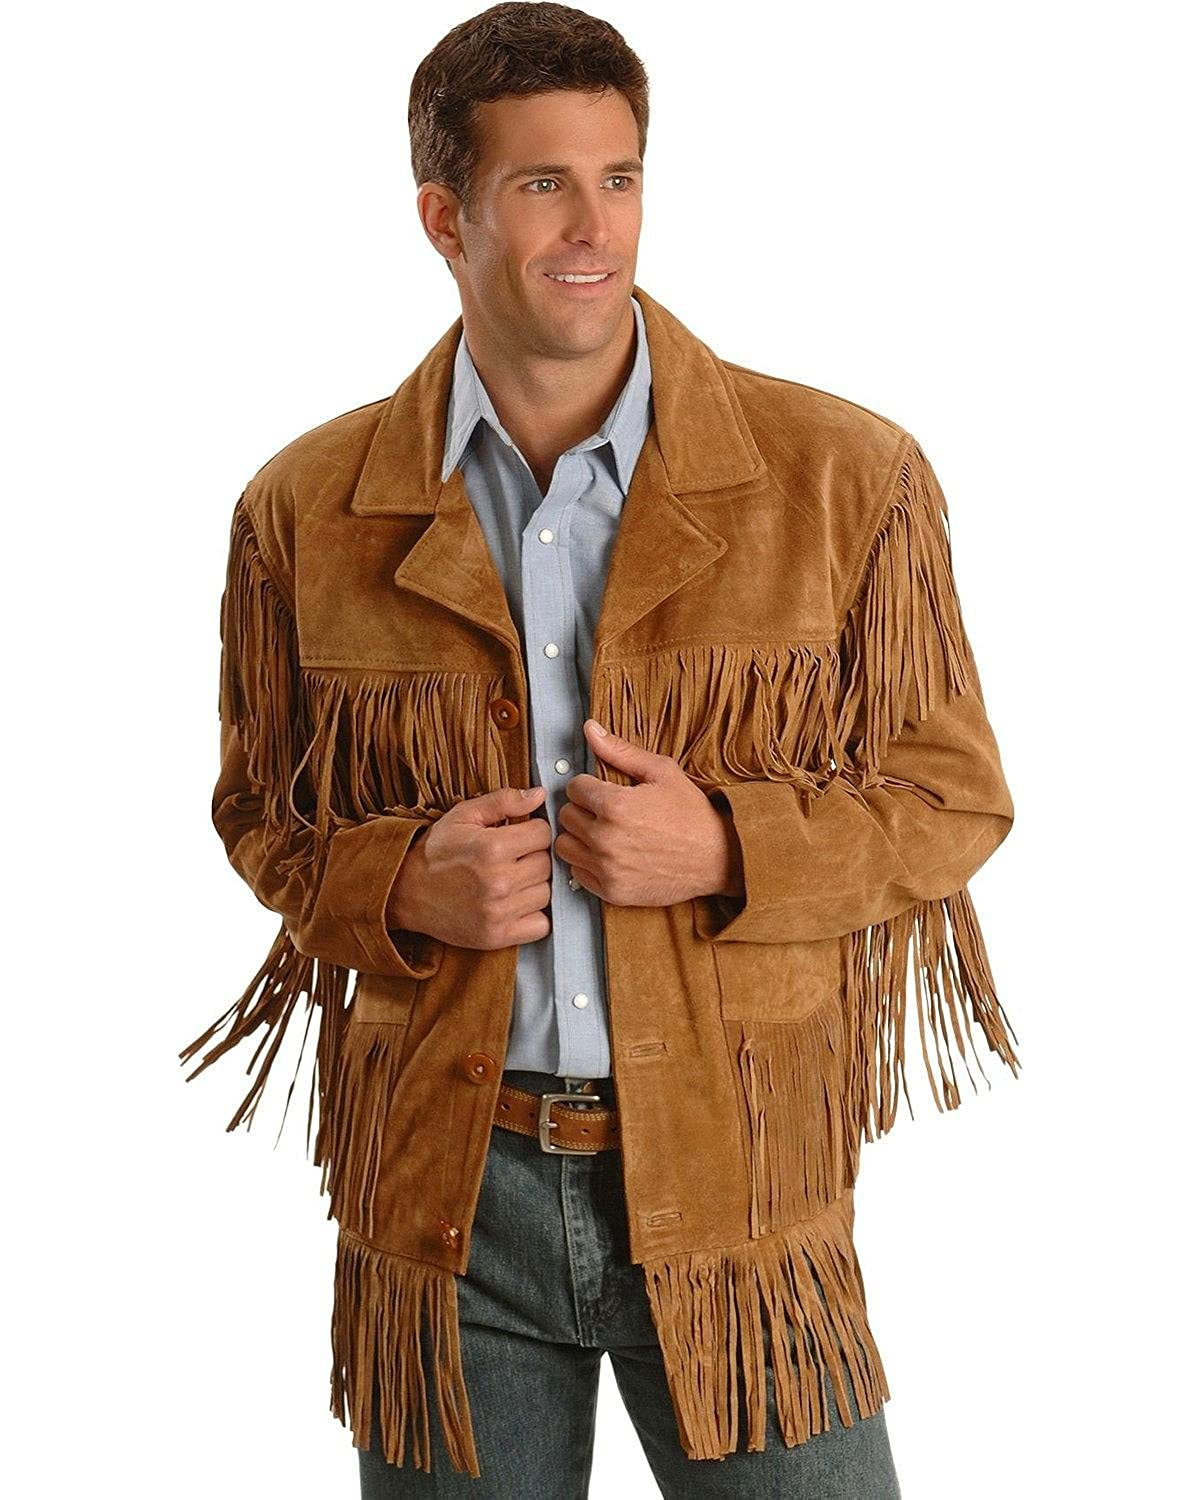 bb91f1a58cc7 30%OFF Liberty Wear Men's Fringe Suede Leather Jacket - 9927 Tobacco ...